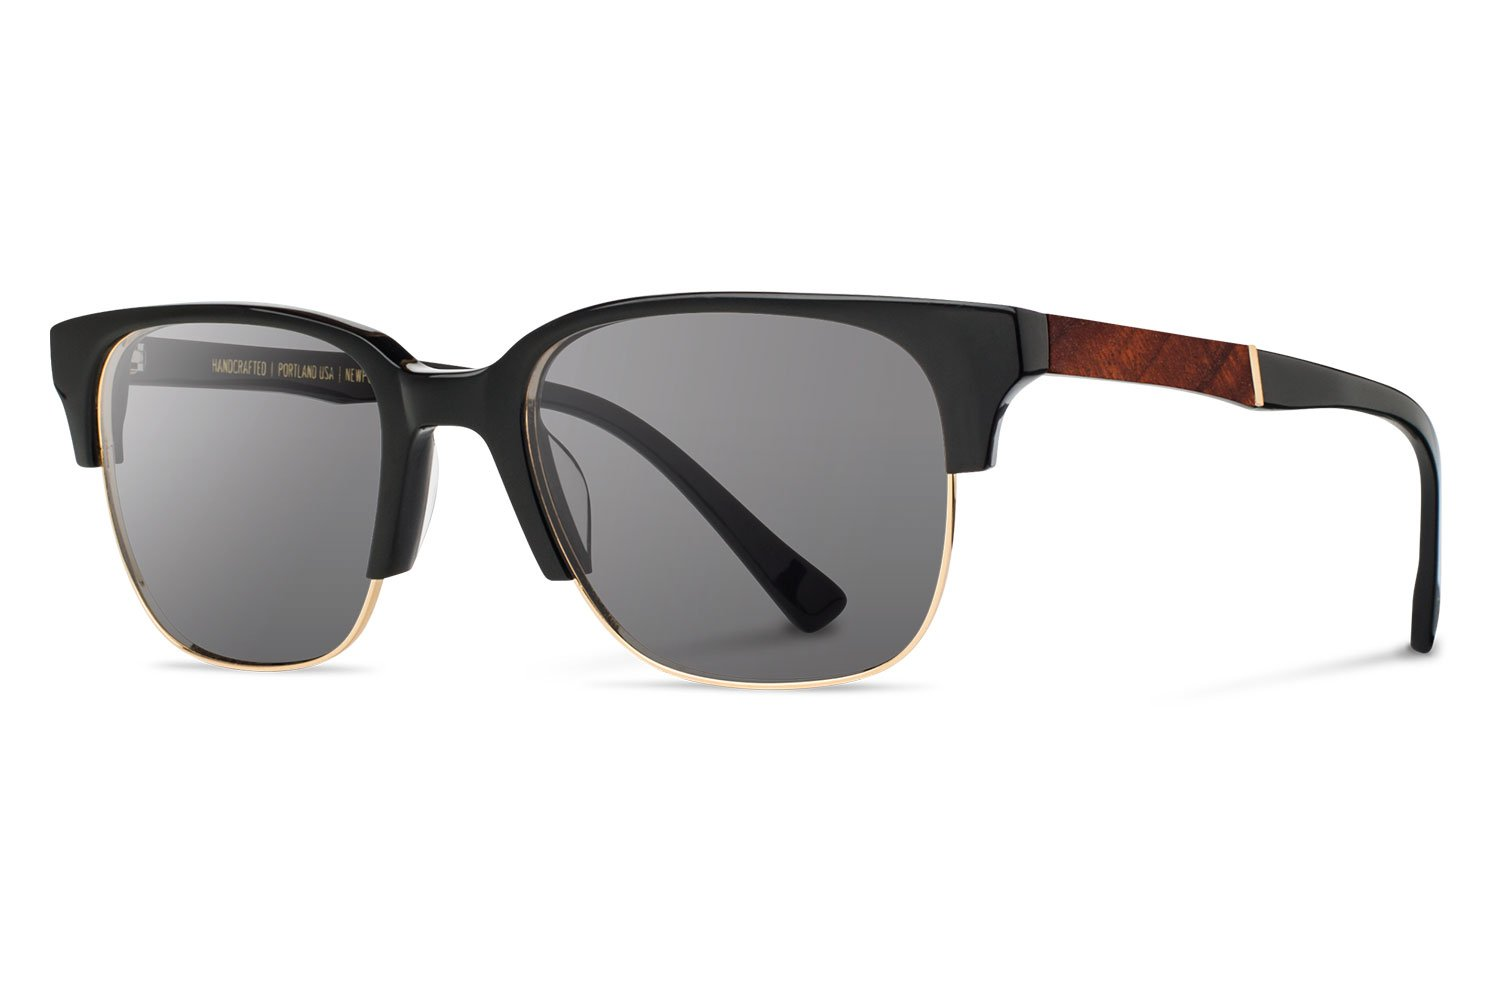 Shwood - Newport 52 mm Acetate, Sustainability Meets Style, Black with Mahogany Inlay, Grey Lenses